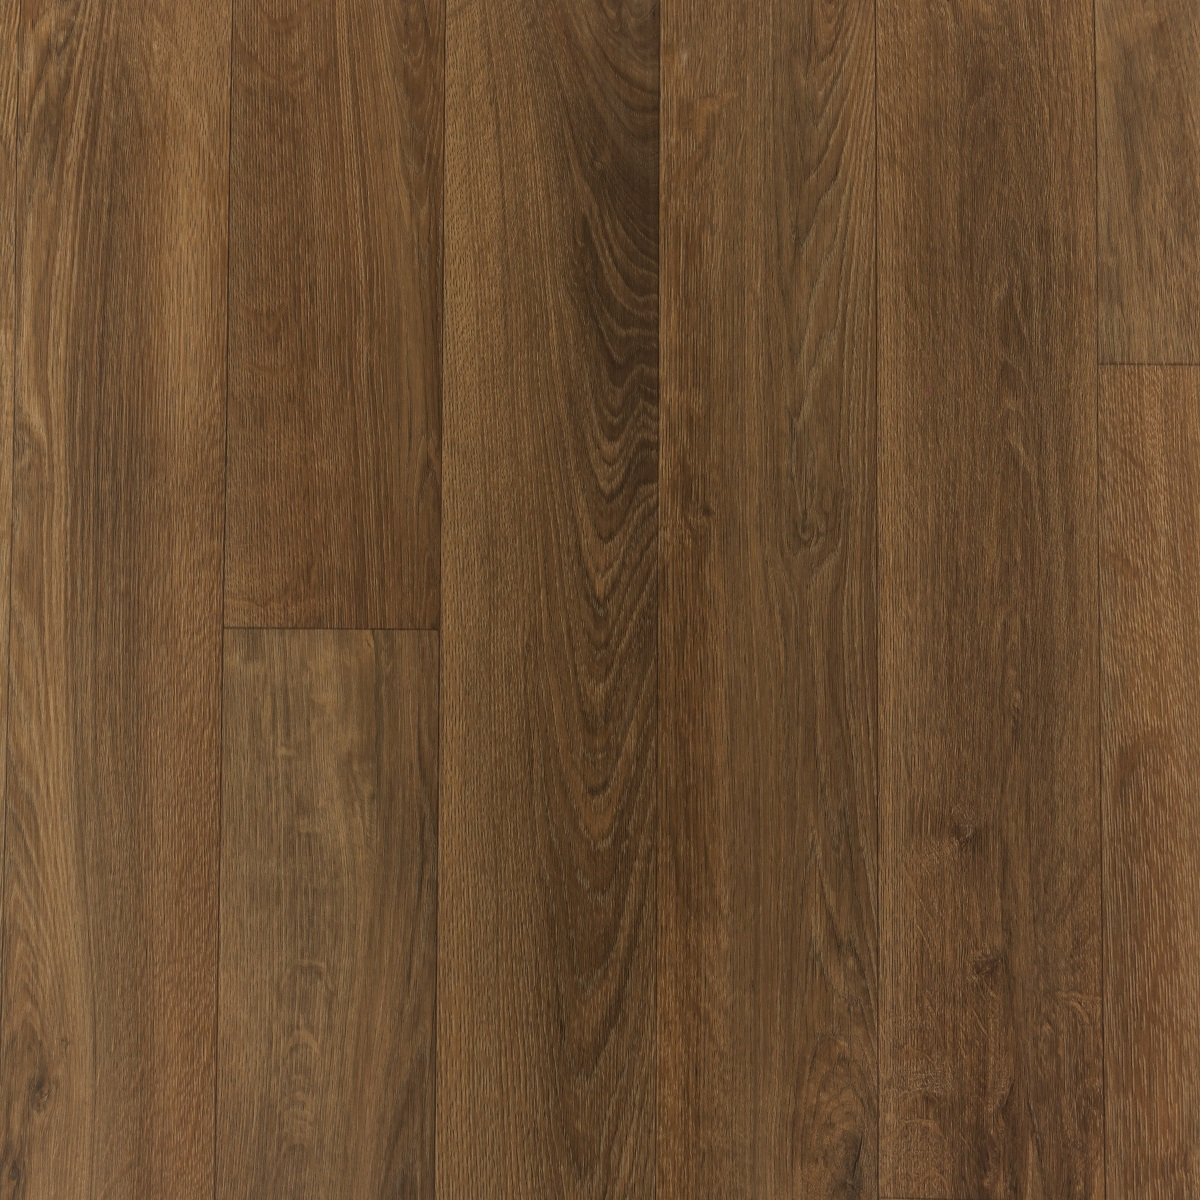 Noblesse French Oak Light Brown 025